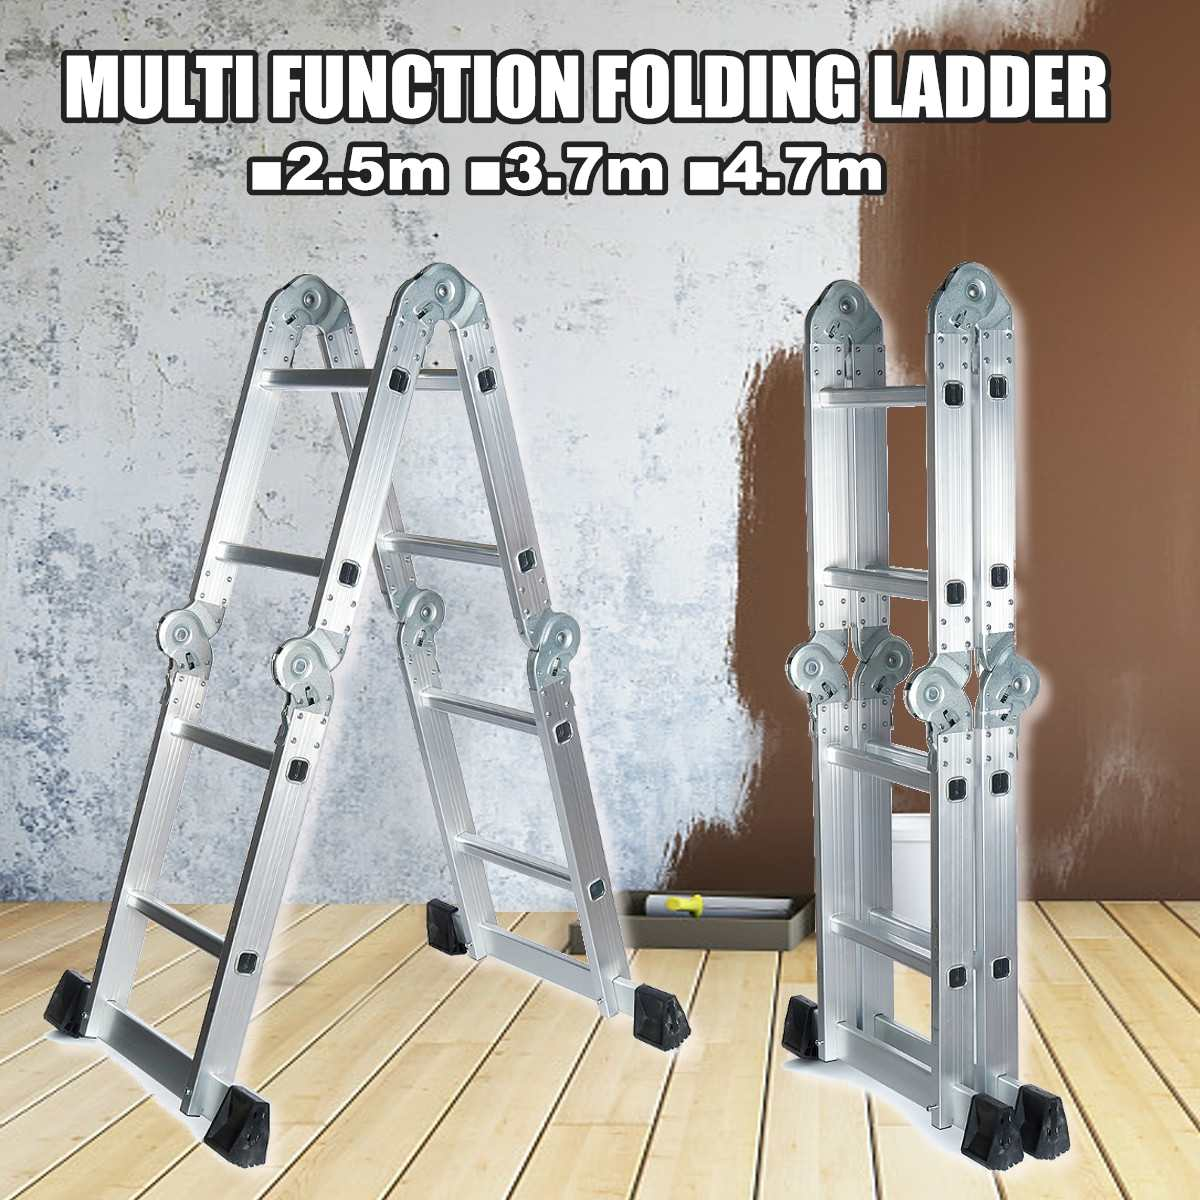 Telescopic Folding Ladder Step-Stand House Aluminium Ladders Telescoping Multi-Purpose Extension Folding Step Ladder 4.7m